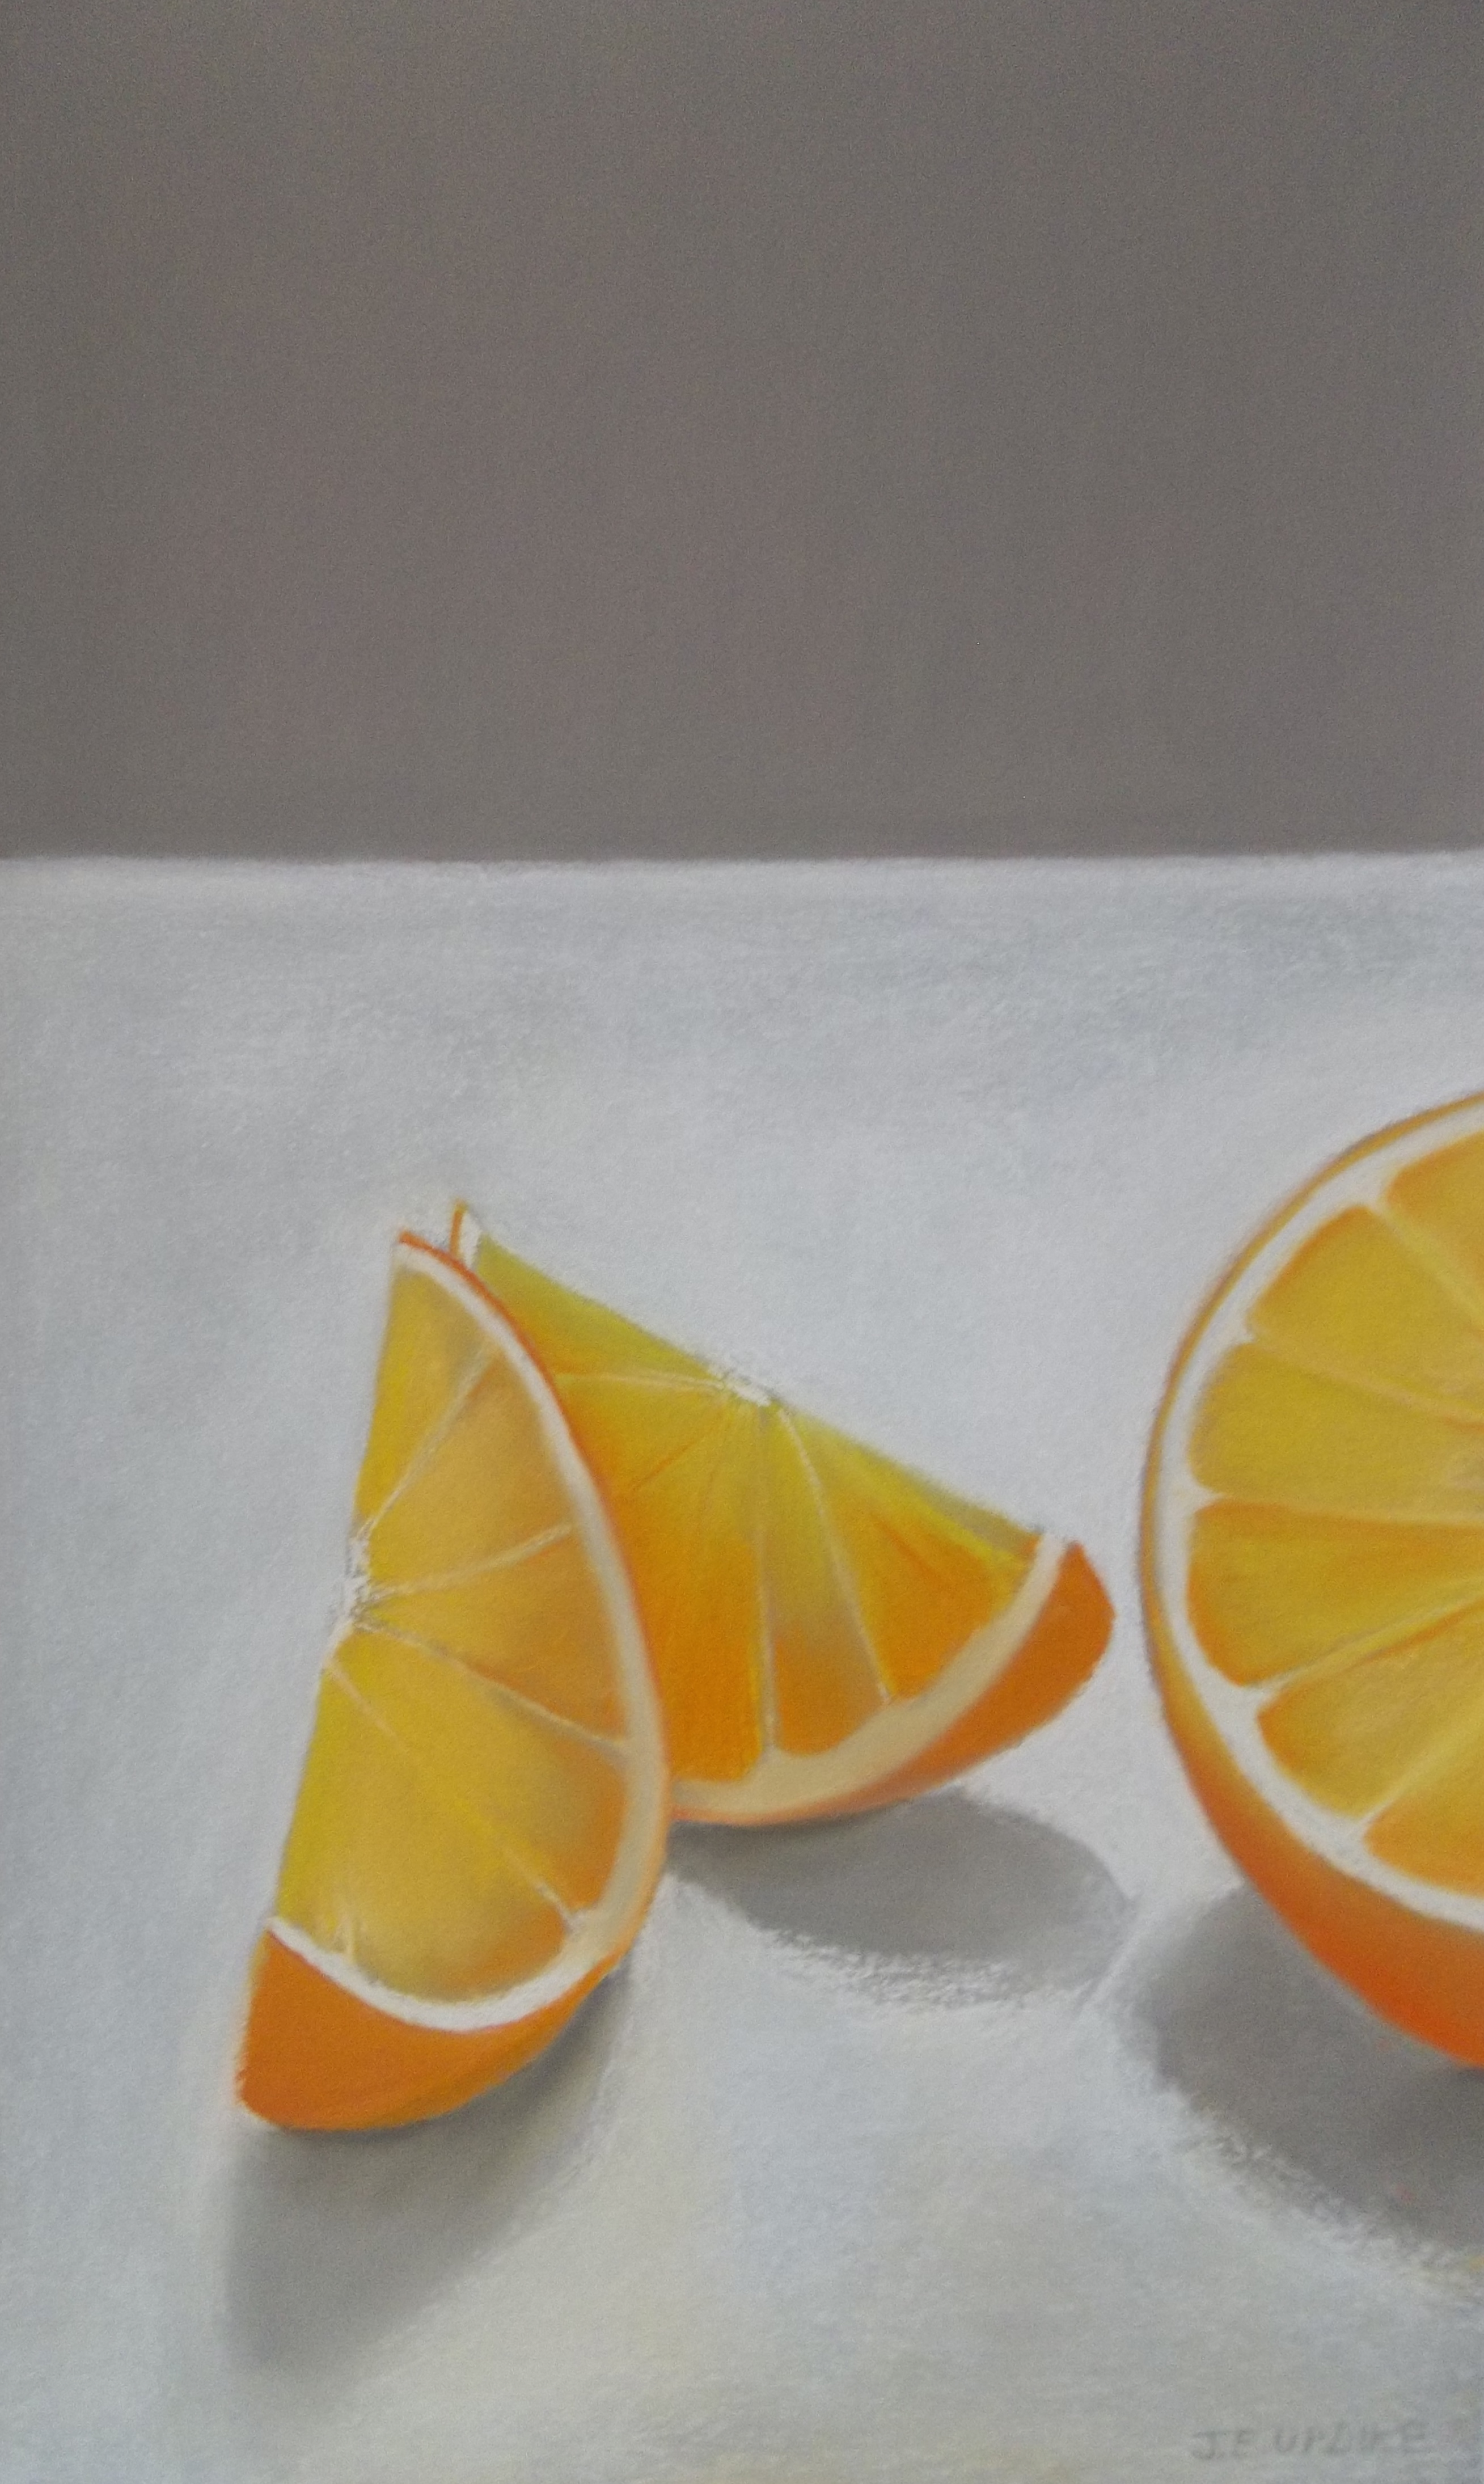 Navel Orange Slices